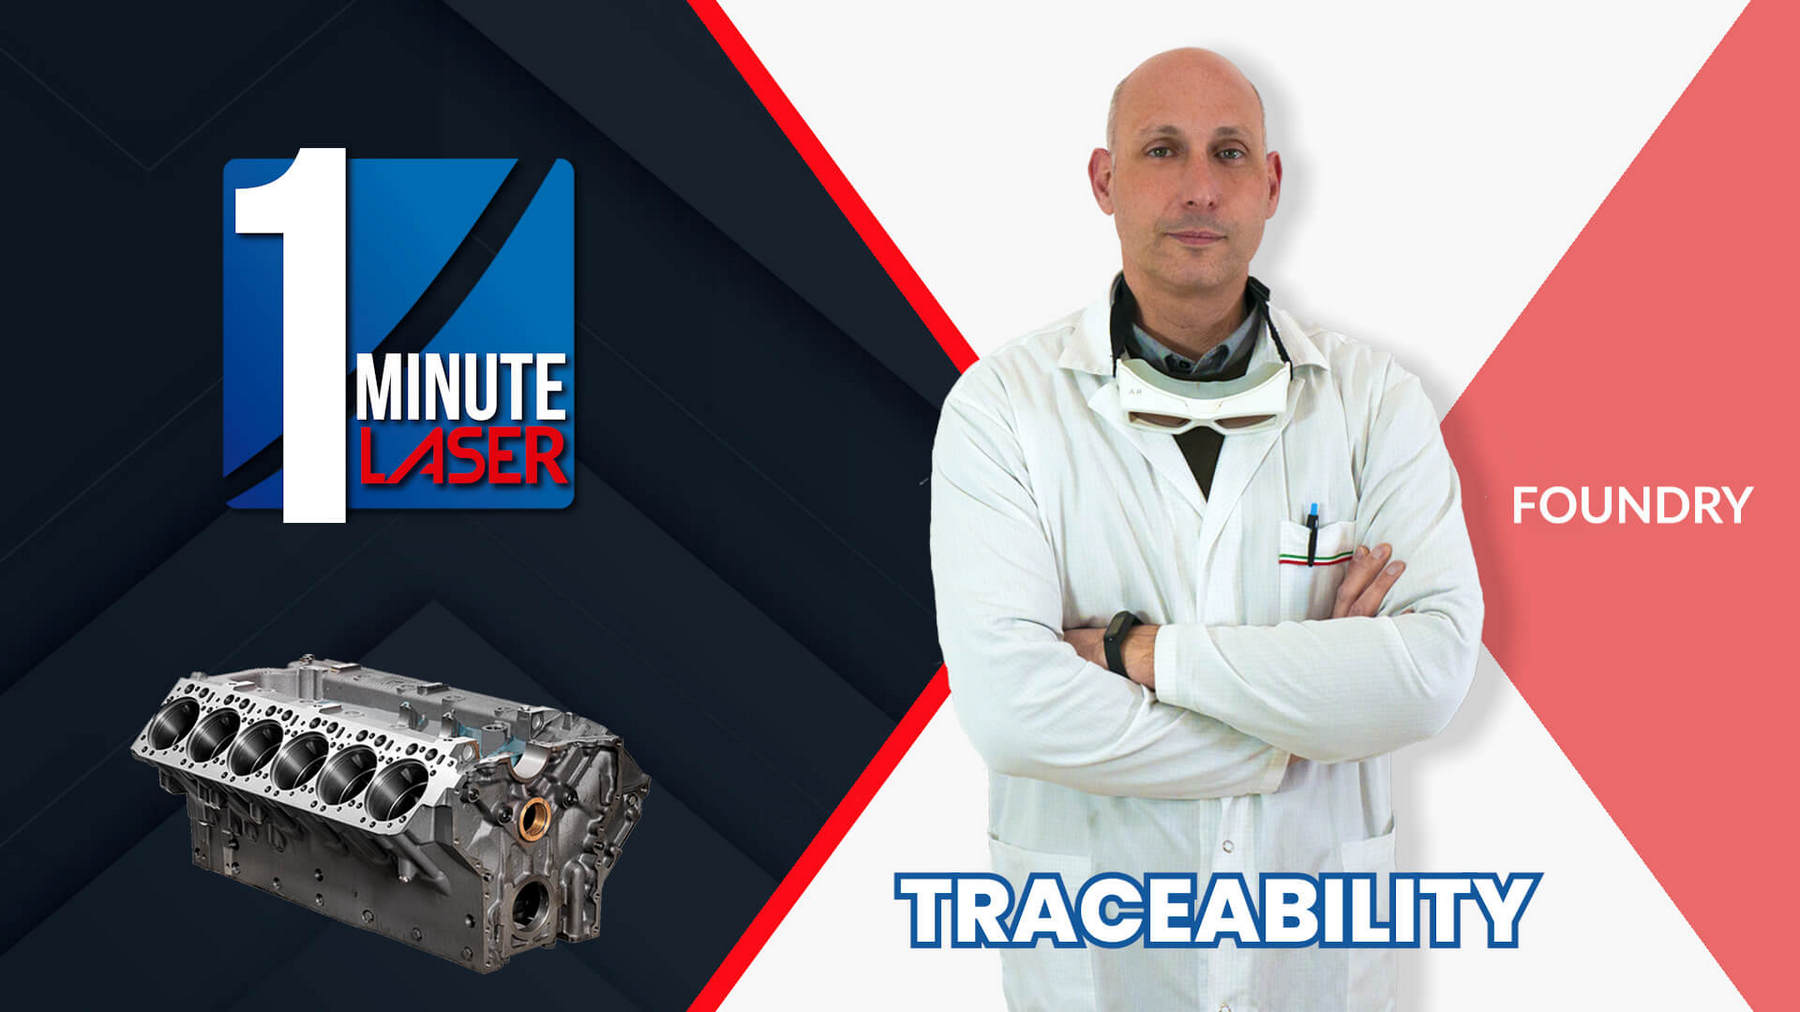 One-Minute-Laser-1-Traceability-1D-e-2D-codes_COPERTINA Foundry